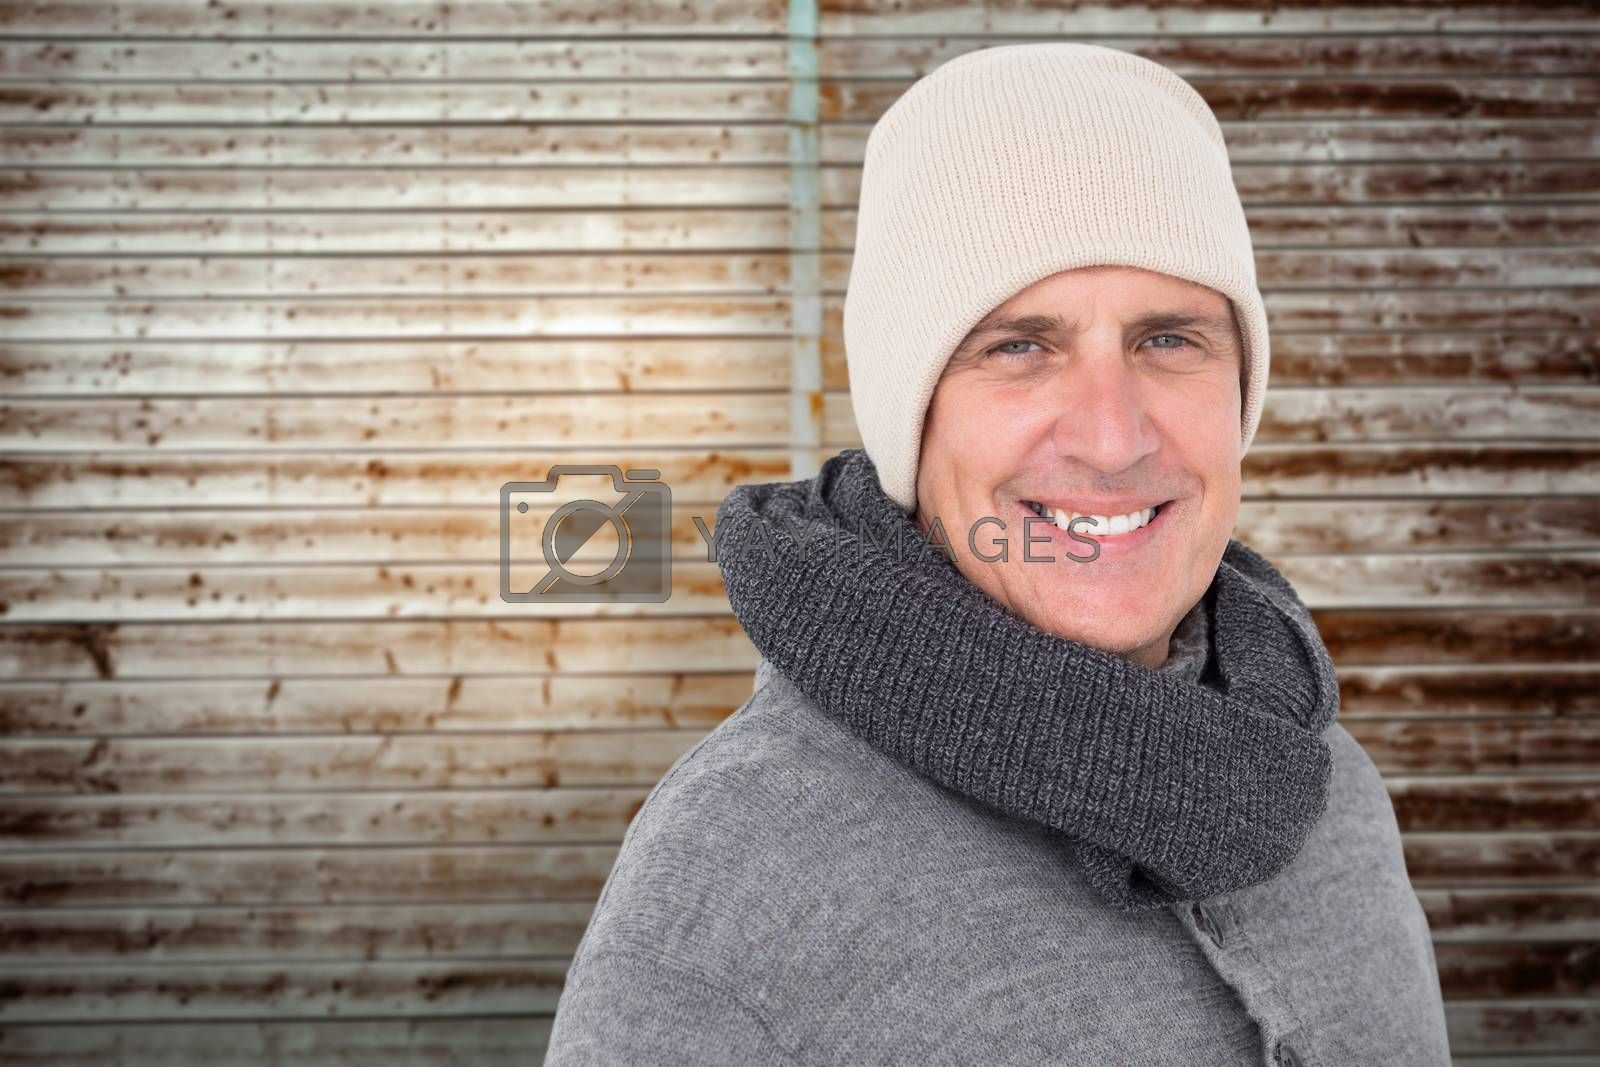 Casual man in warm clothing against wooden planks